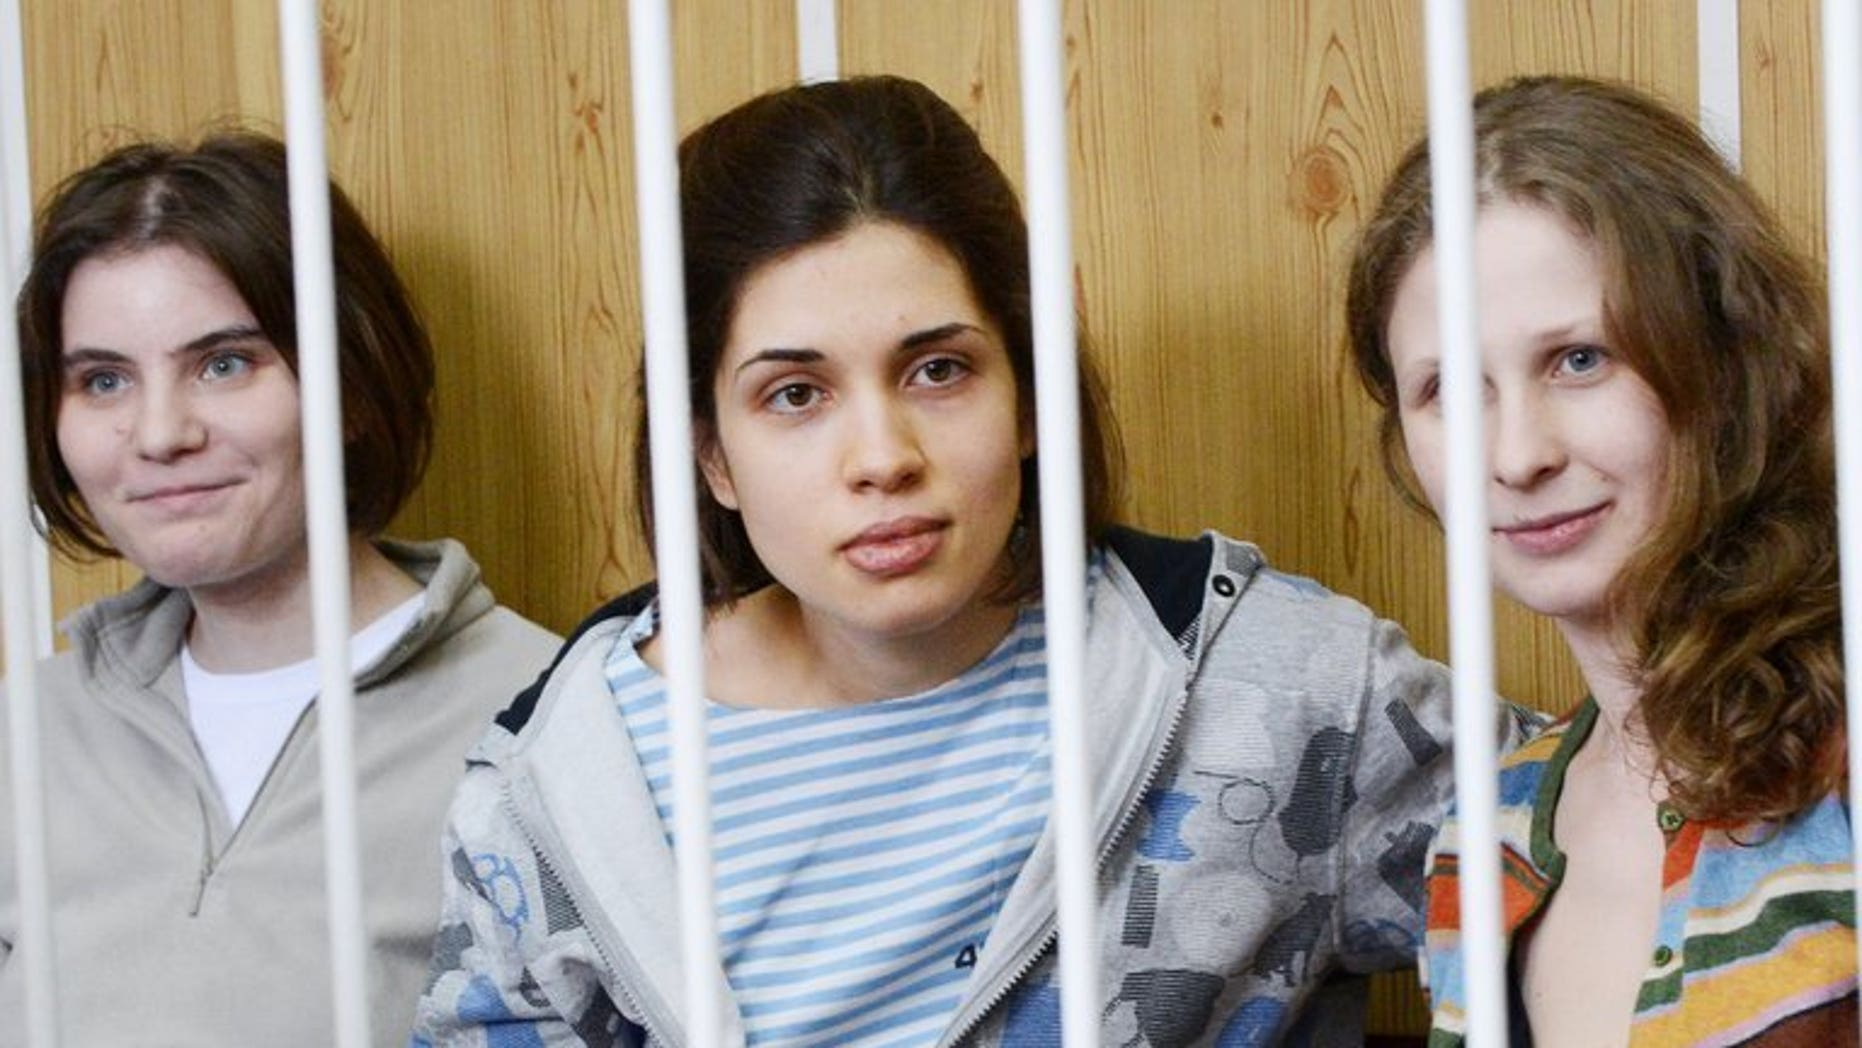 Picture taken on July 20, 2012 shows members of the all-girl punk band Pussy Riot Nadezhda Tolokonnikova (C), Maria Alyokhina (R) and Yekaterina Samutsevich during a court hearing in Moscow. A Russian court on Friday ruled to keep Tolokonnikova in prison, after she appealed an earlier decision denying her release on parole from her sentence over a church protest against President Vladimir Putin.